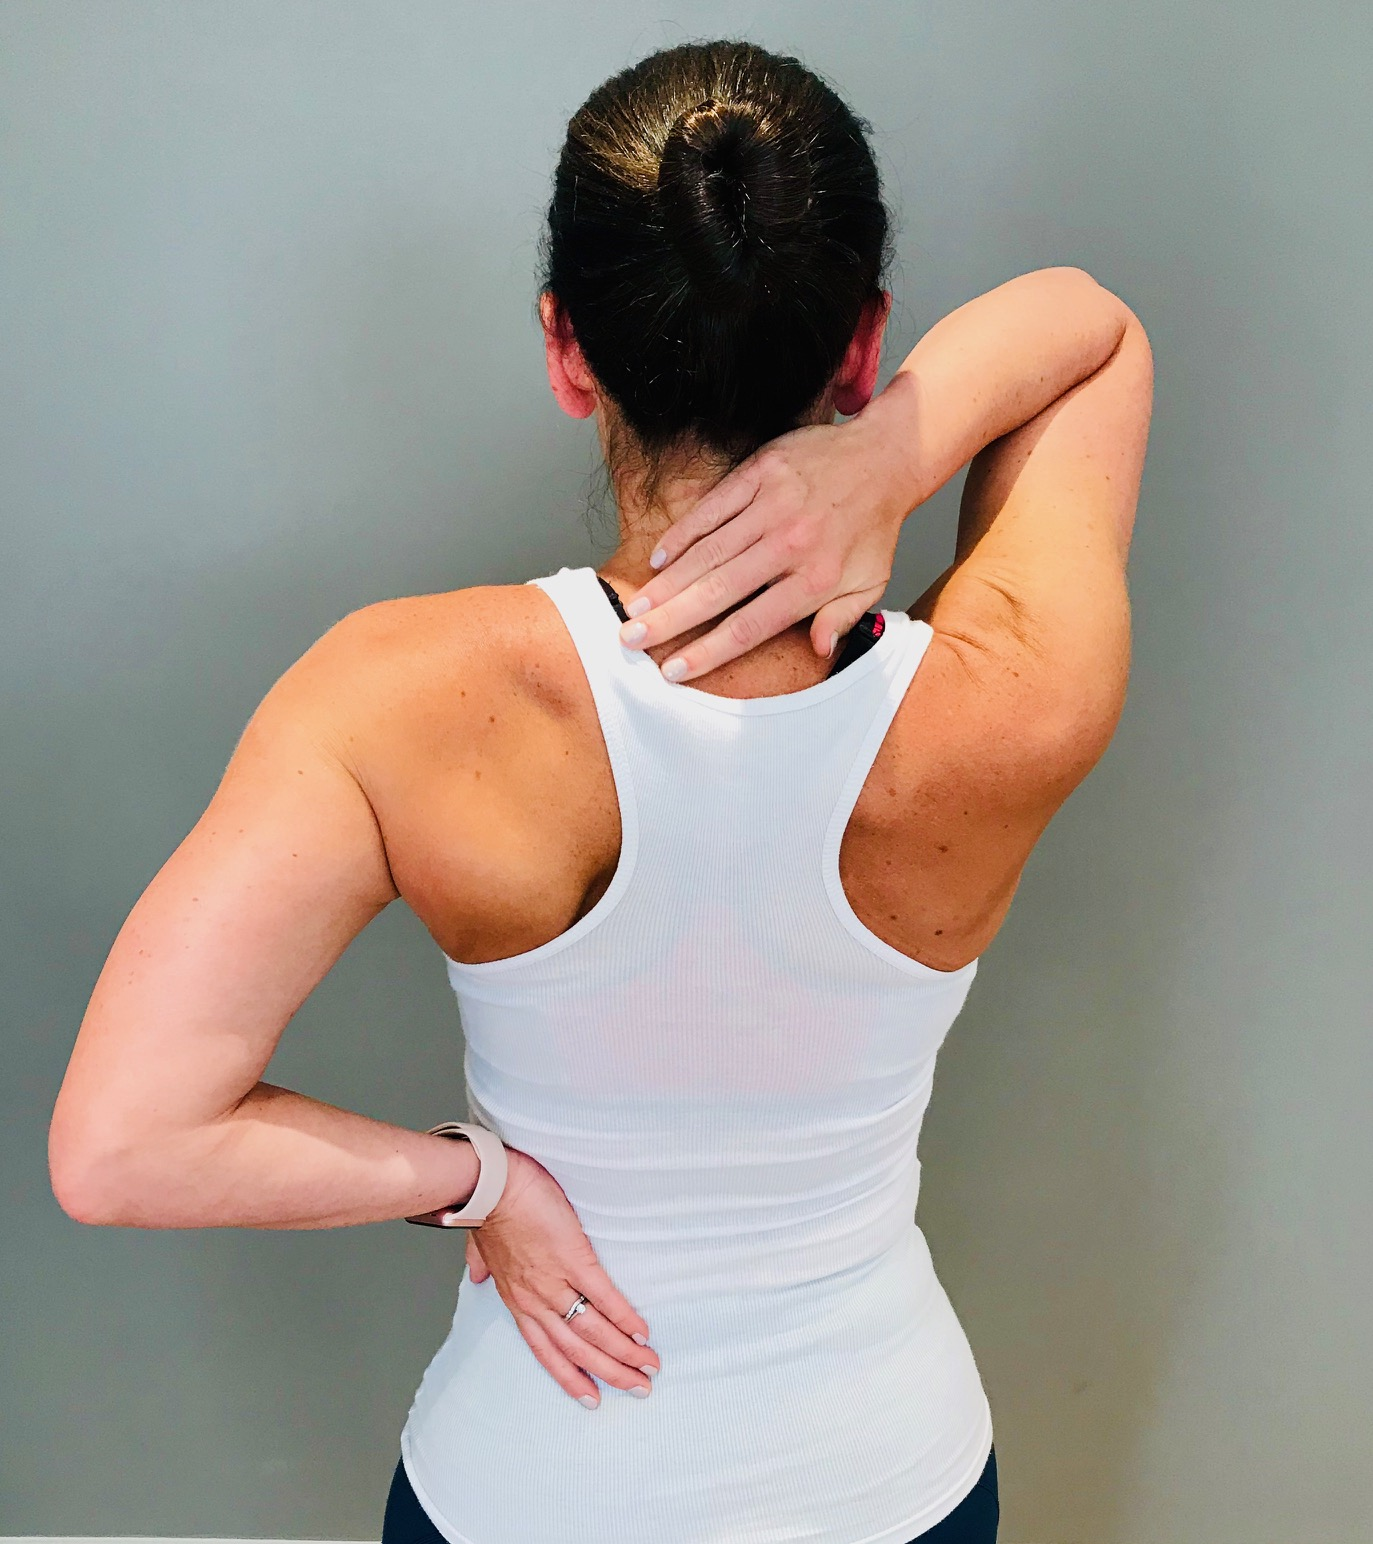 Can you have pain without injury?